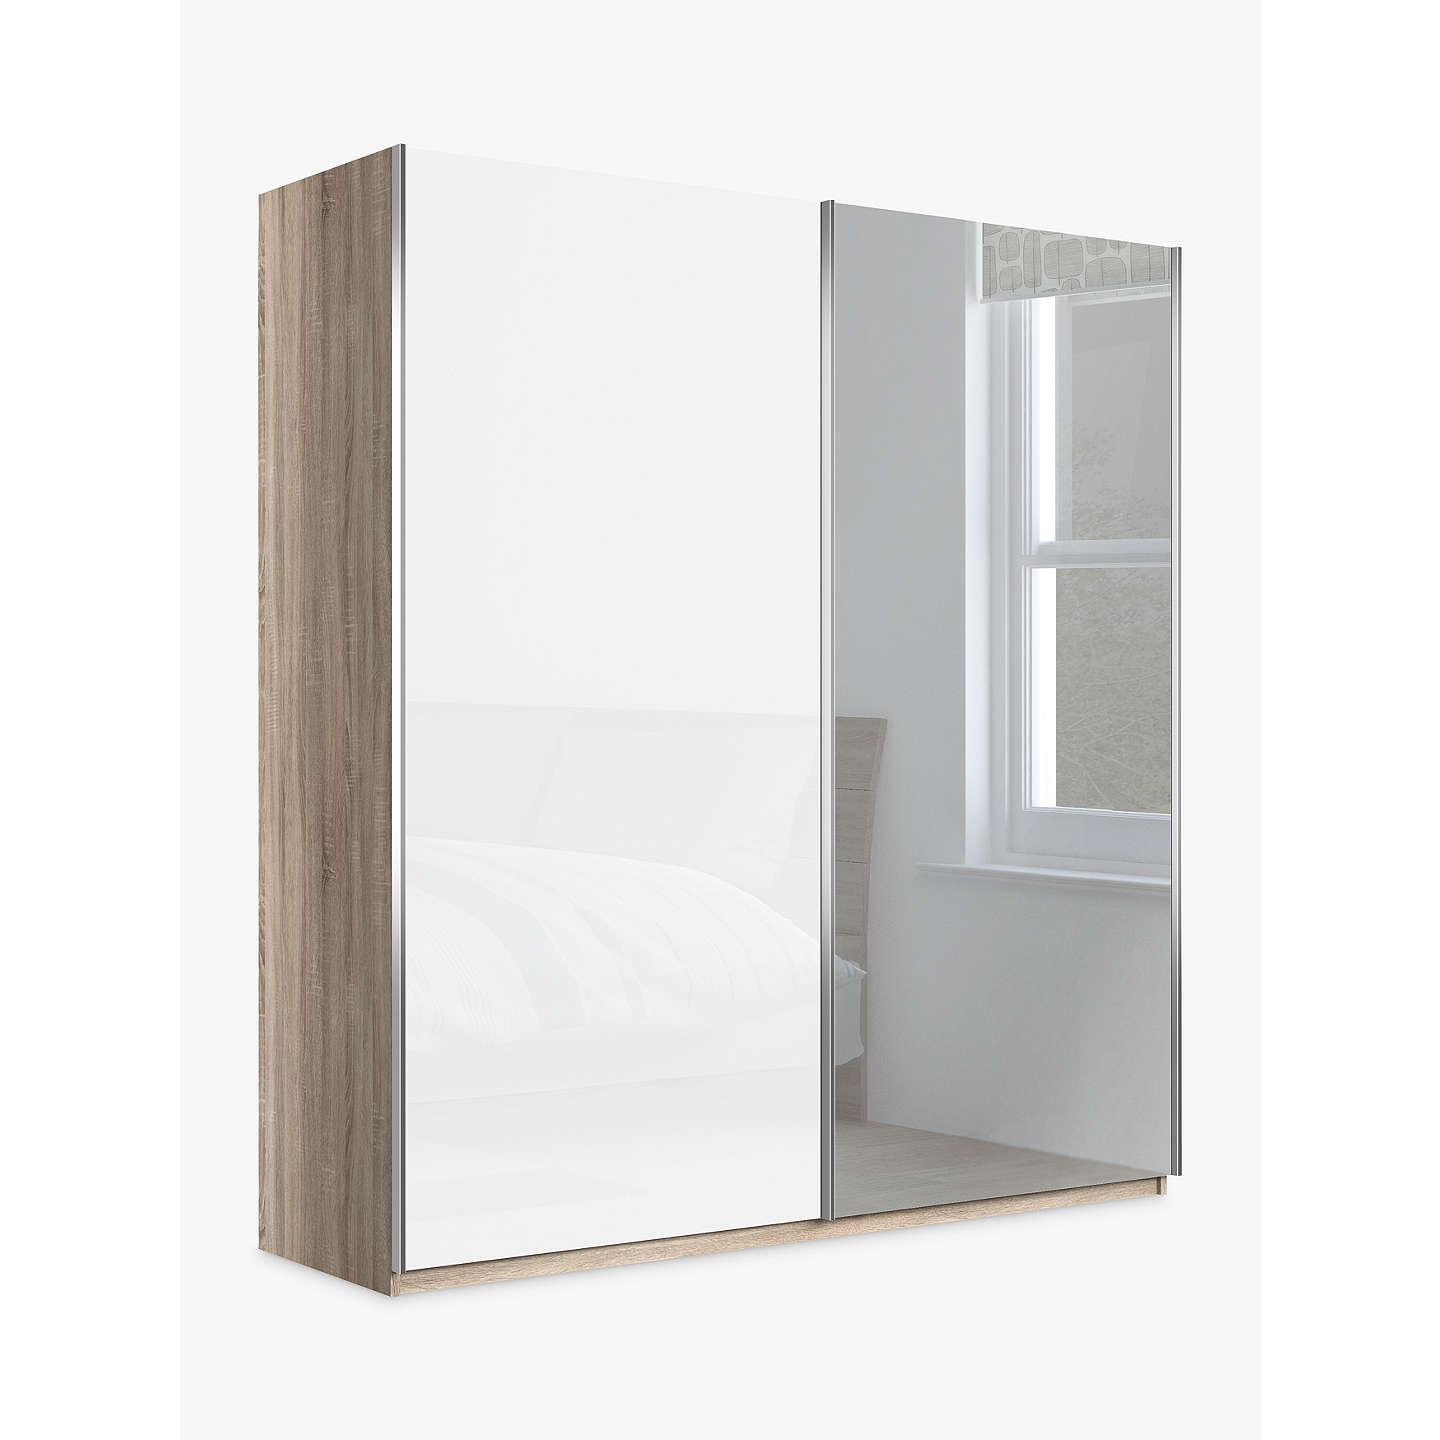 John Lewis Elstra 200cm Wardrobe With Glass And Mirrored